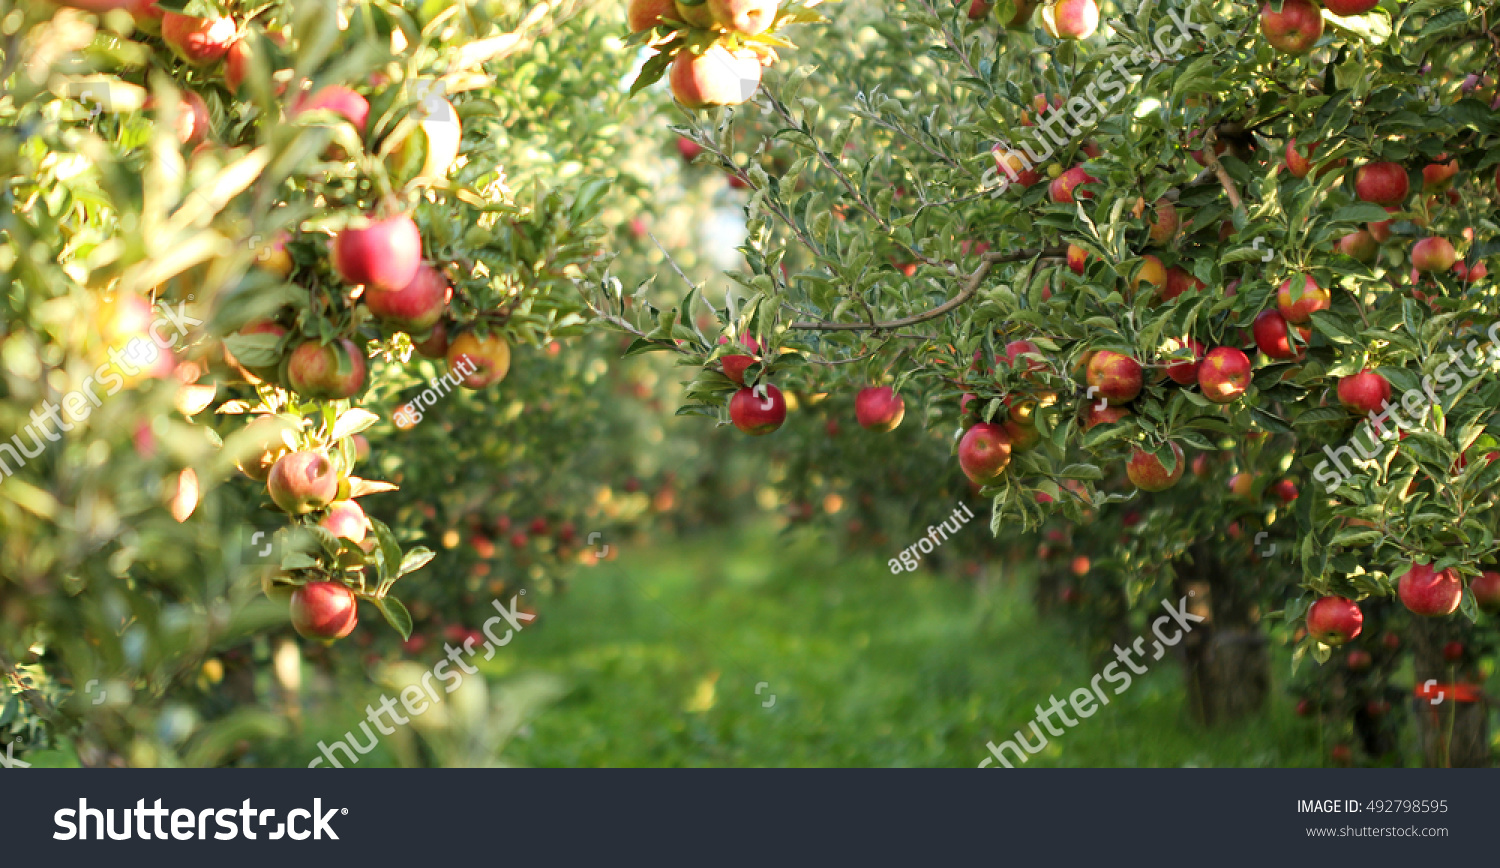 stock-photo-picture-of-a-ripe-apples-in-